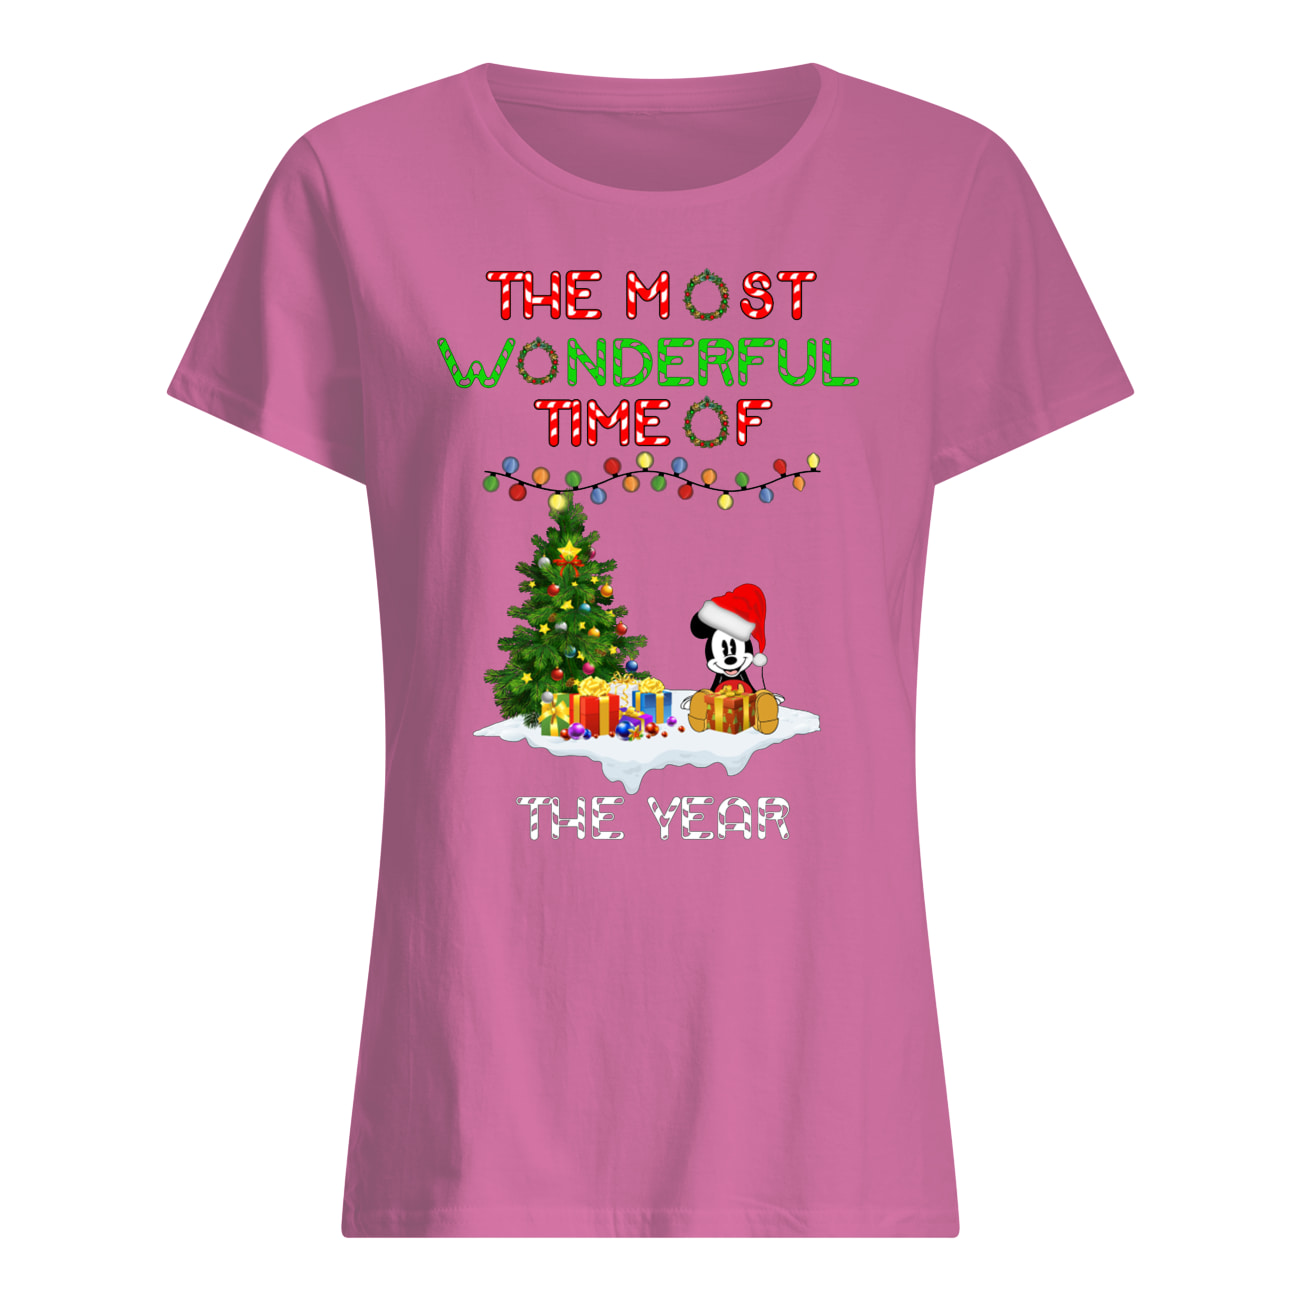 Christmas mickey mouse the most wonderful time of the year womens shirt